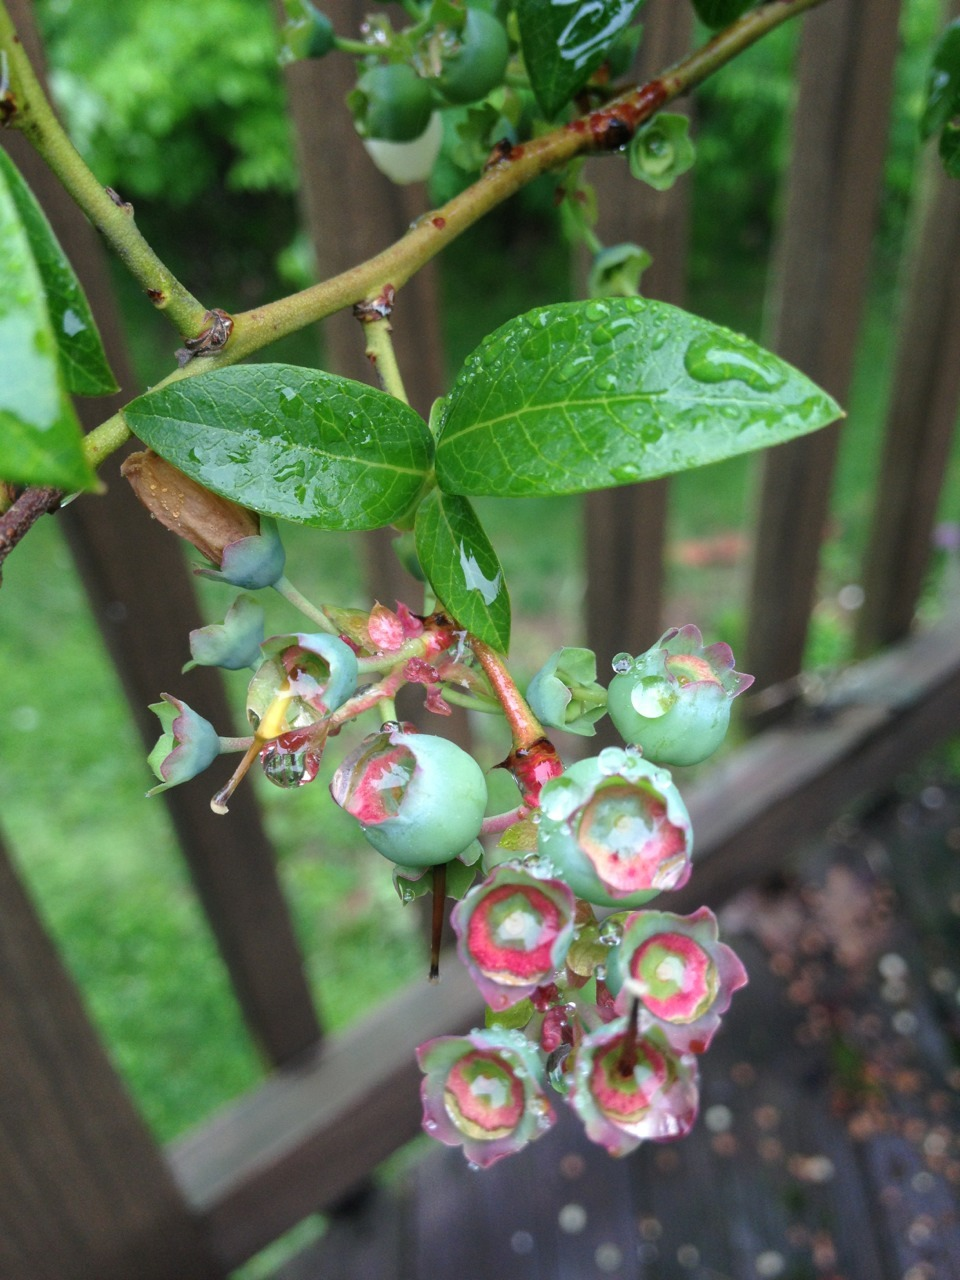 "hqcreations:  nyackbackyard:  There are two blueberry bushes planted an a whiskey barrel on my deck- ""Misty"" and ""Bluecrop."" I'm excited because they're flowering prolifically this year and I see lots of berries coming! They're covered with bird netting because last year half the harvest flew away.  nice! are these ""standard"" sized blueberry bushes in whiskey barrels? I got a dwarf blueberry in a container because I cant find a space to dedicate to acidified soils, but if a whiskey barrel works, I'll totally do that!"